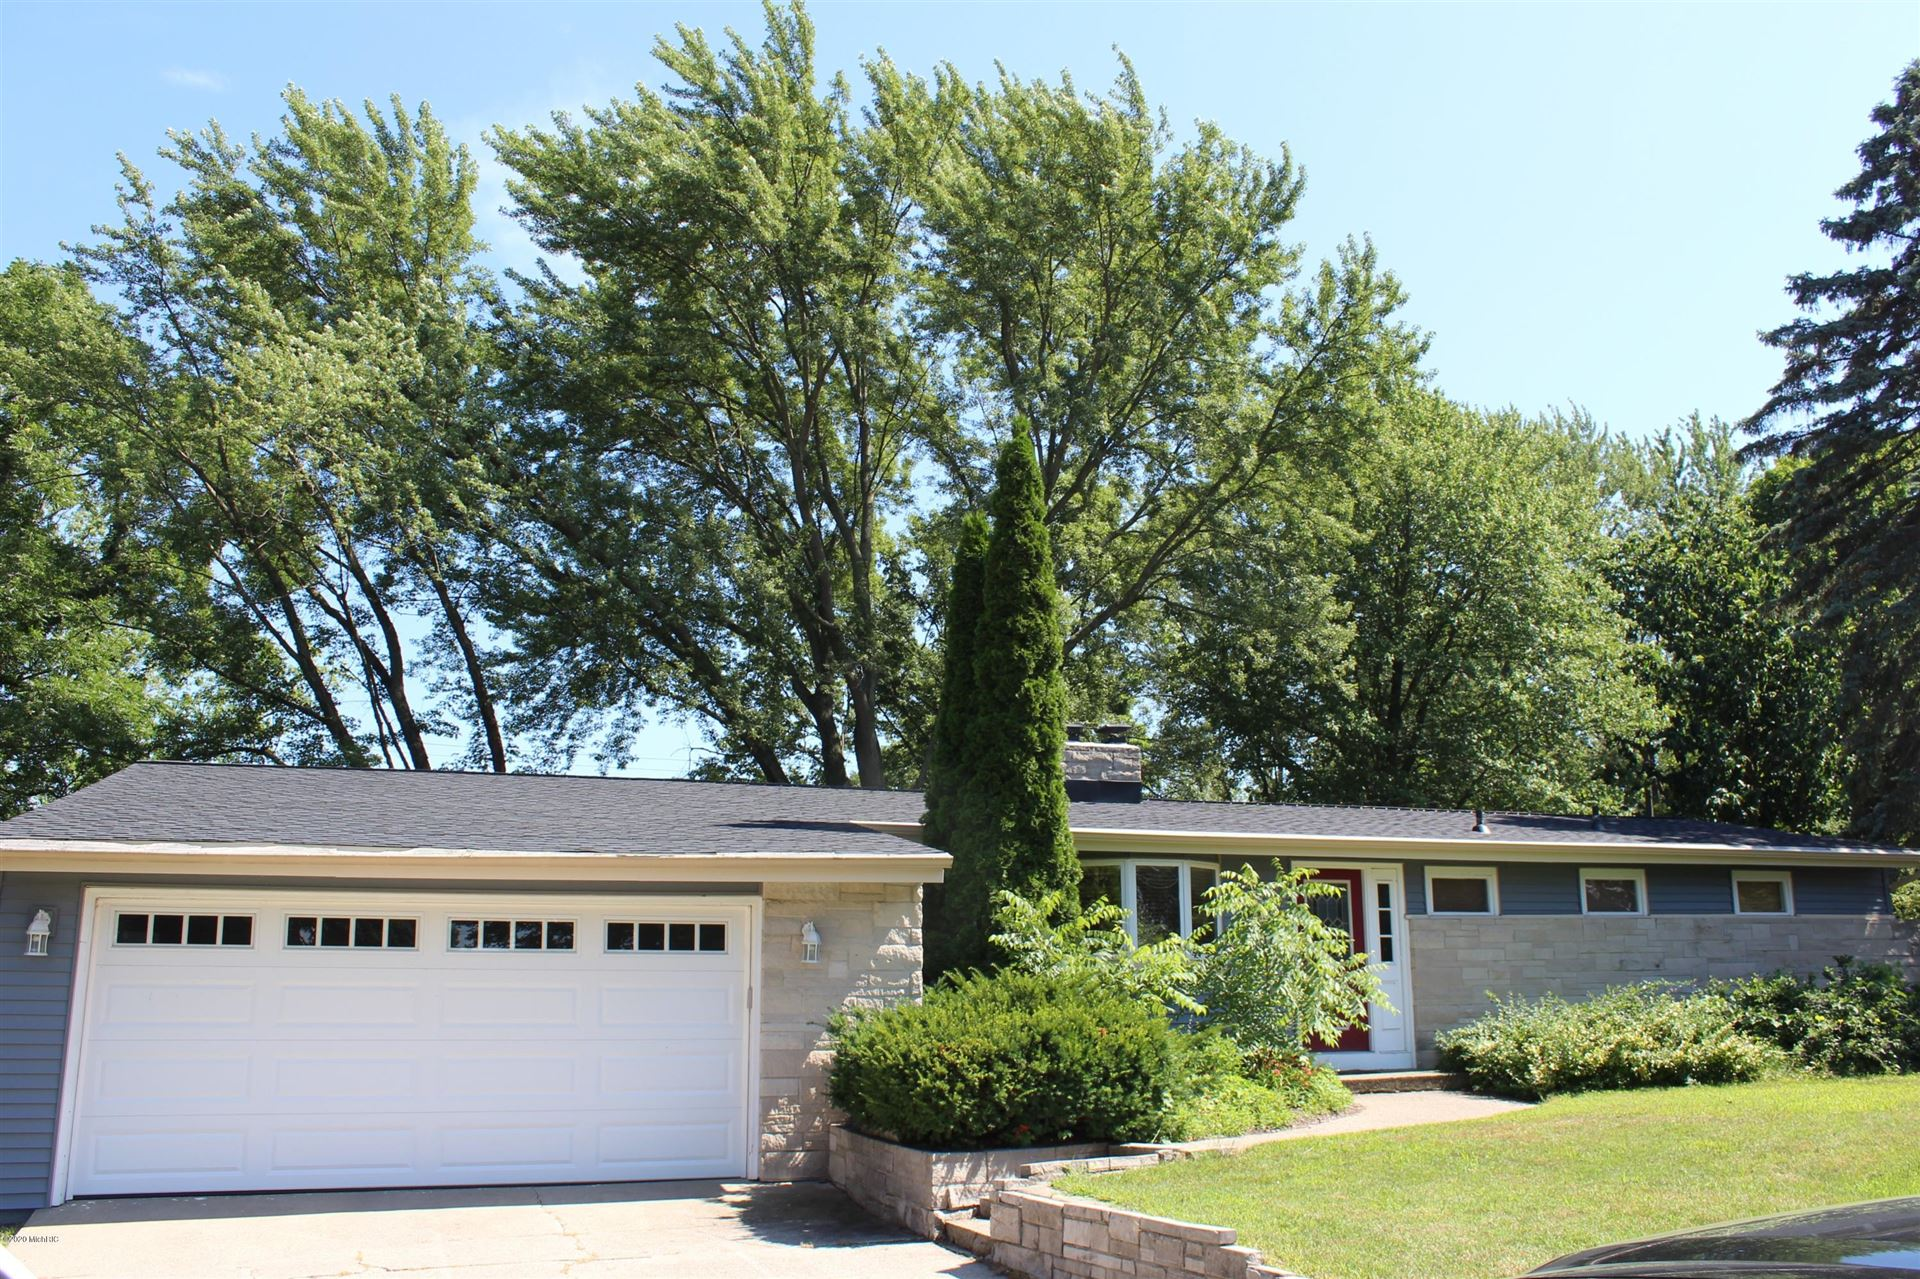 824 S Shore Drive, Holland, MI 49423 - MLS#: 20026940